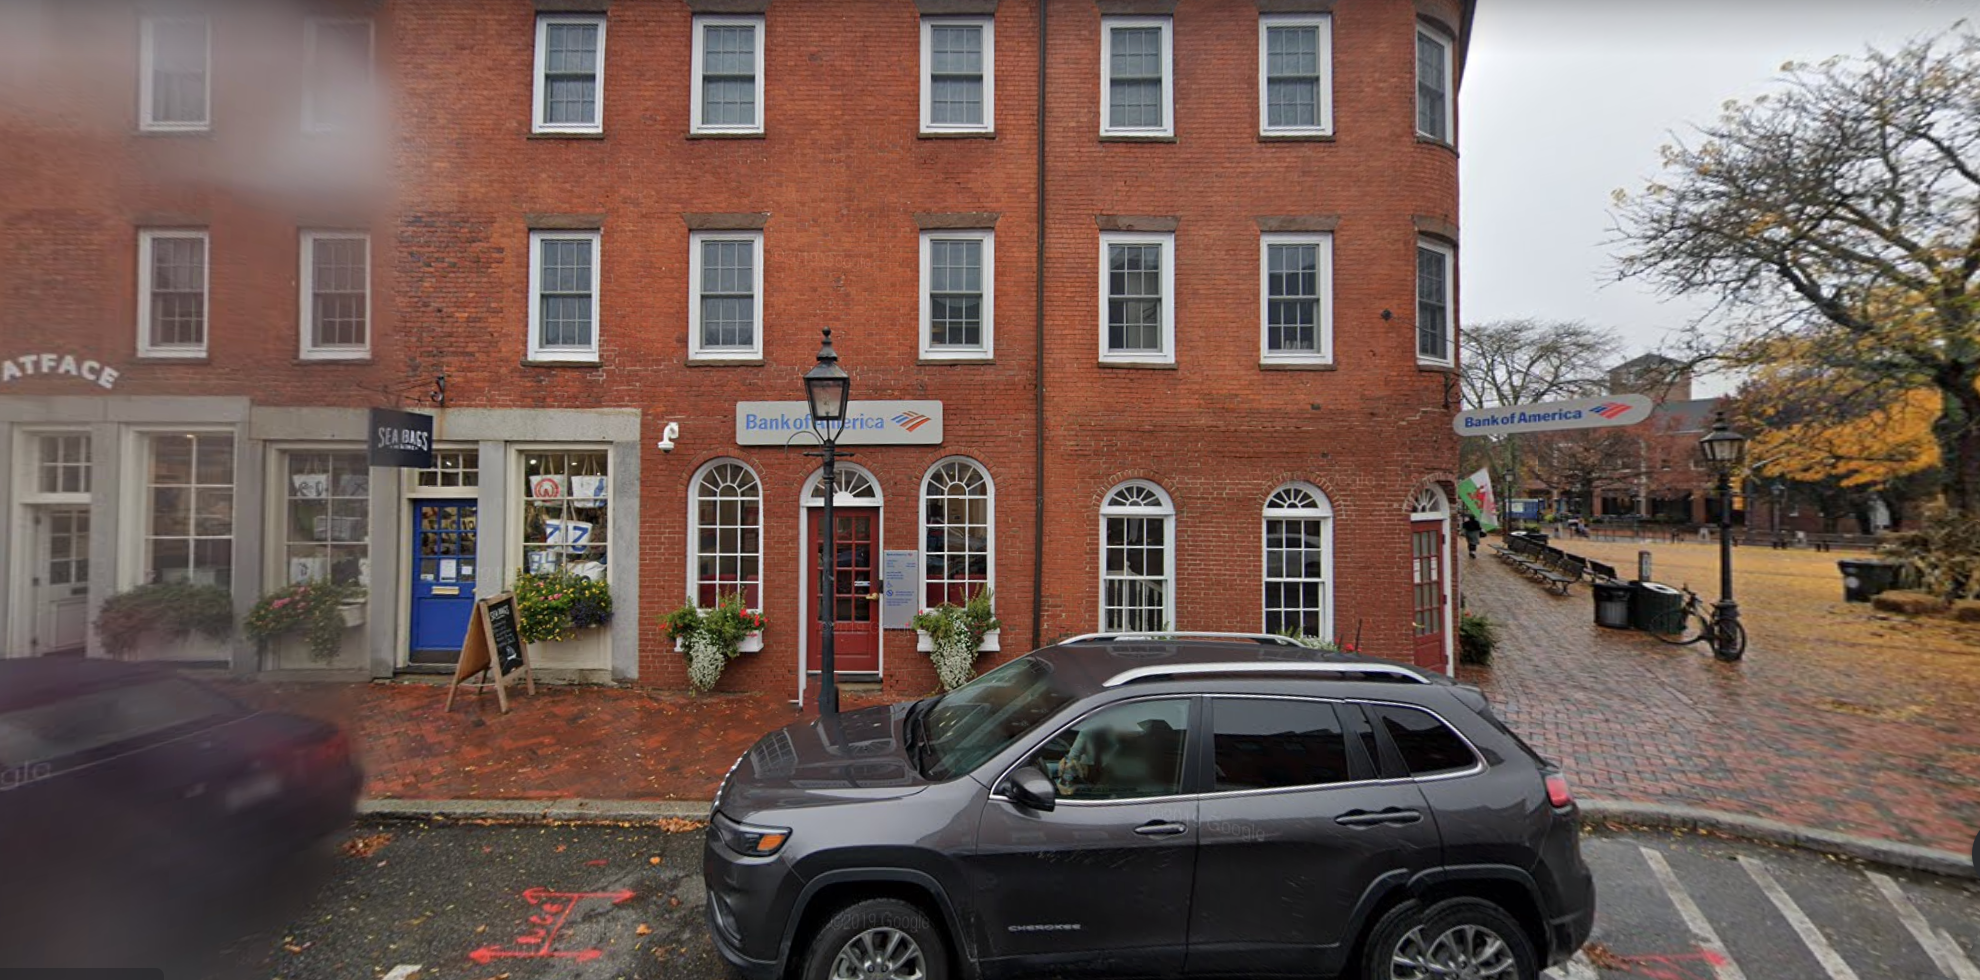 Bank of America financial center with walk-up ATM | 2 State St, Newburyport, MA 01950